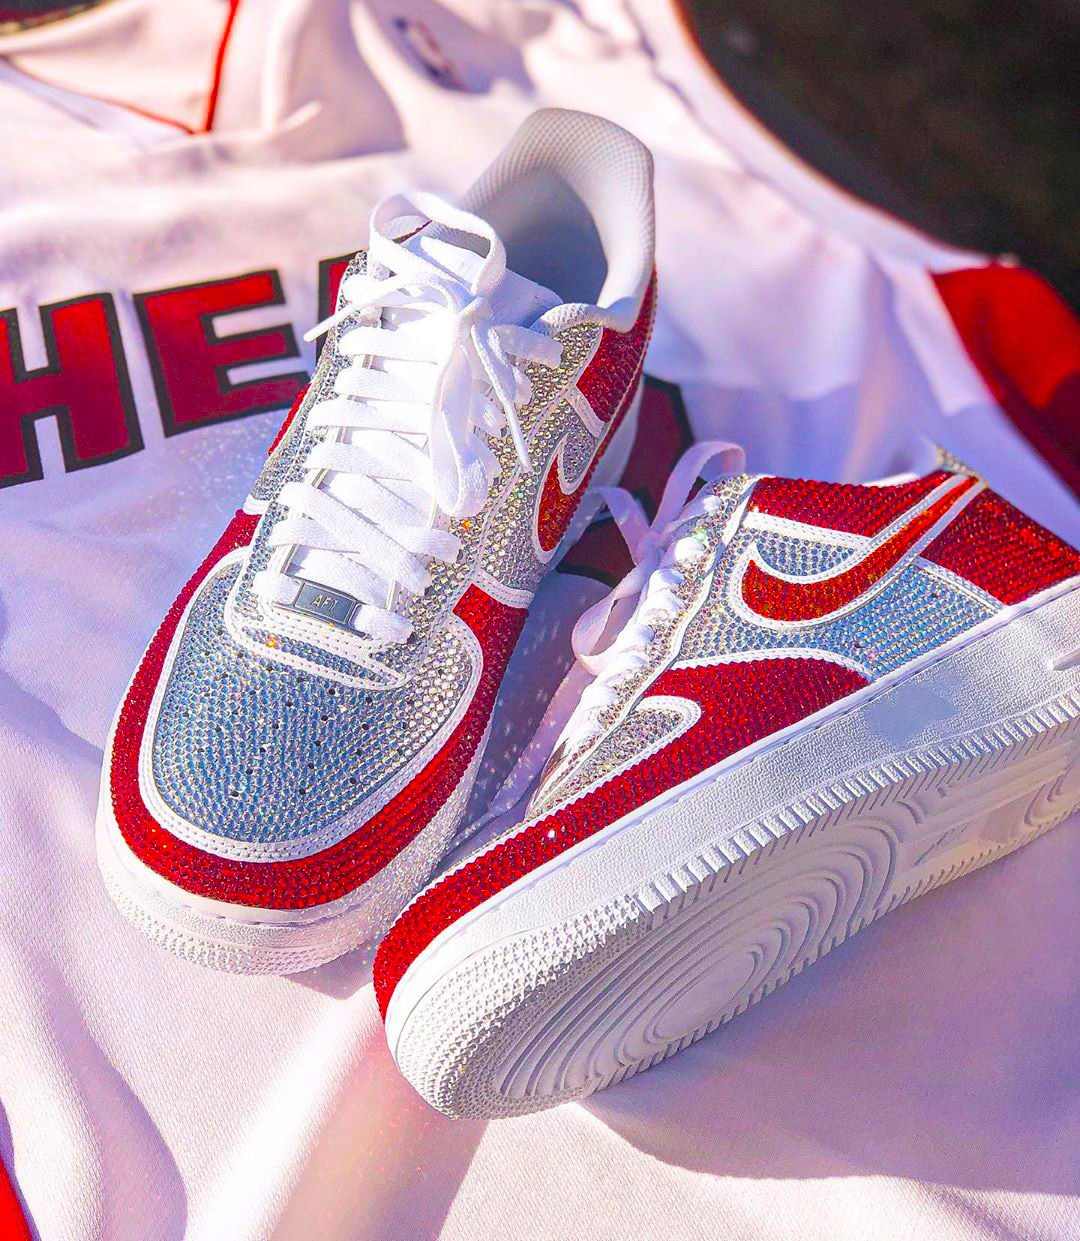 One-of-a-kind Nike Air Force 1s from Addict Bal Harbour